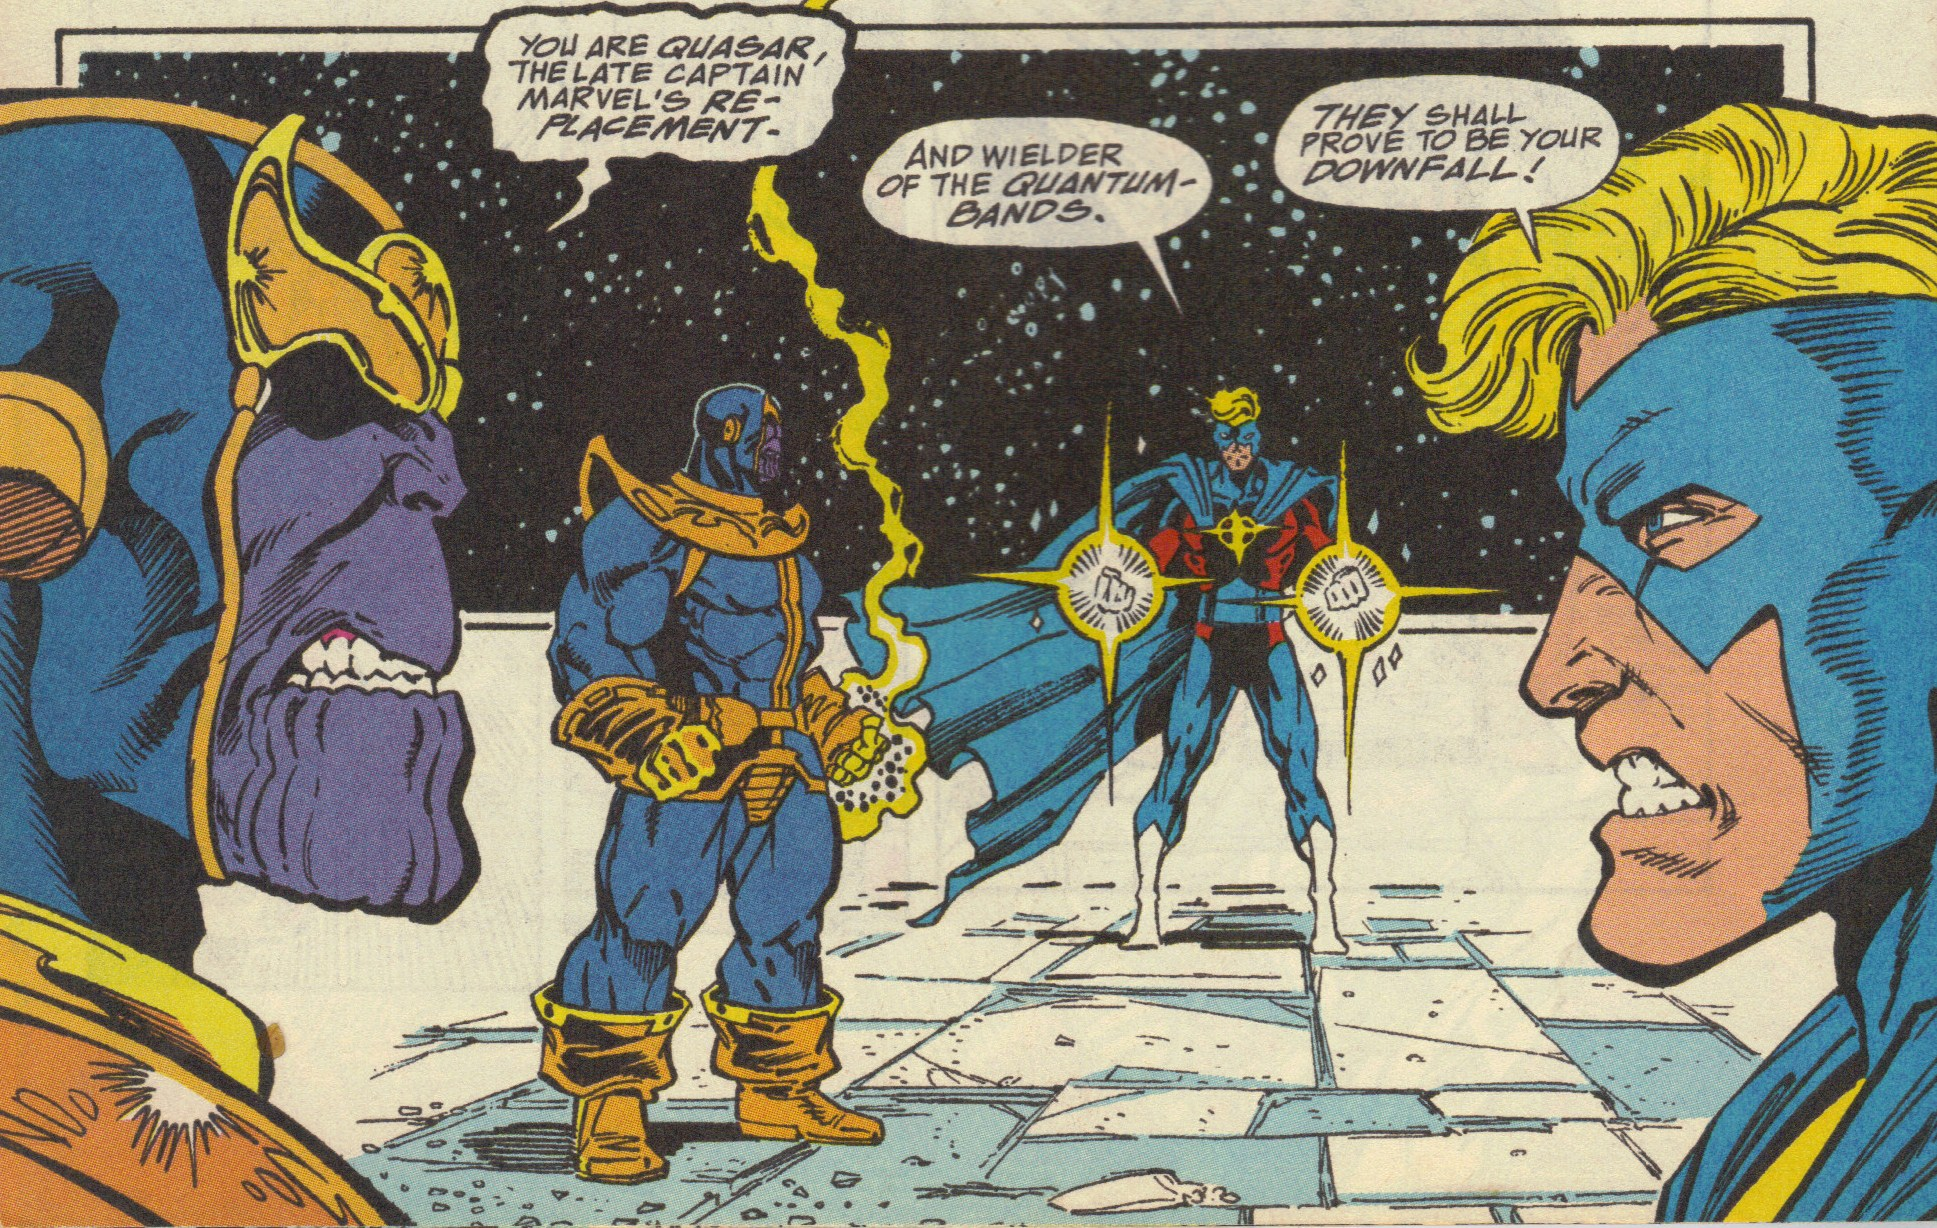 thanos is racist now, | press.exe